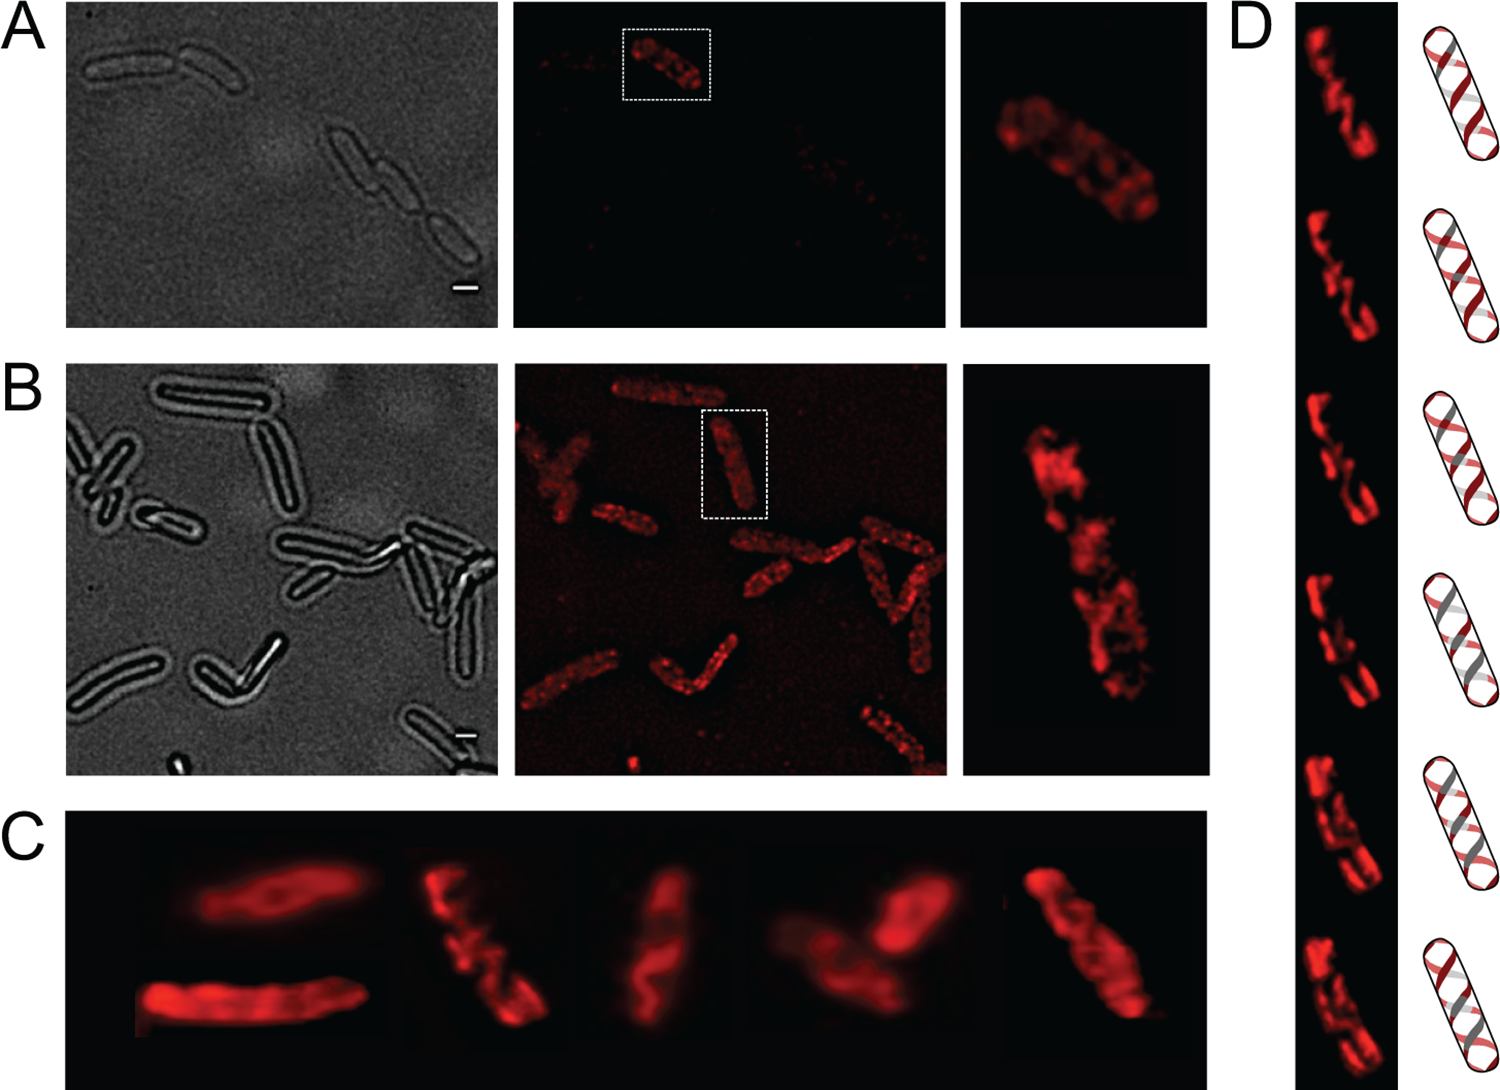 Analysis of OpvA and OpvB localization by fluorescence microscopy.